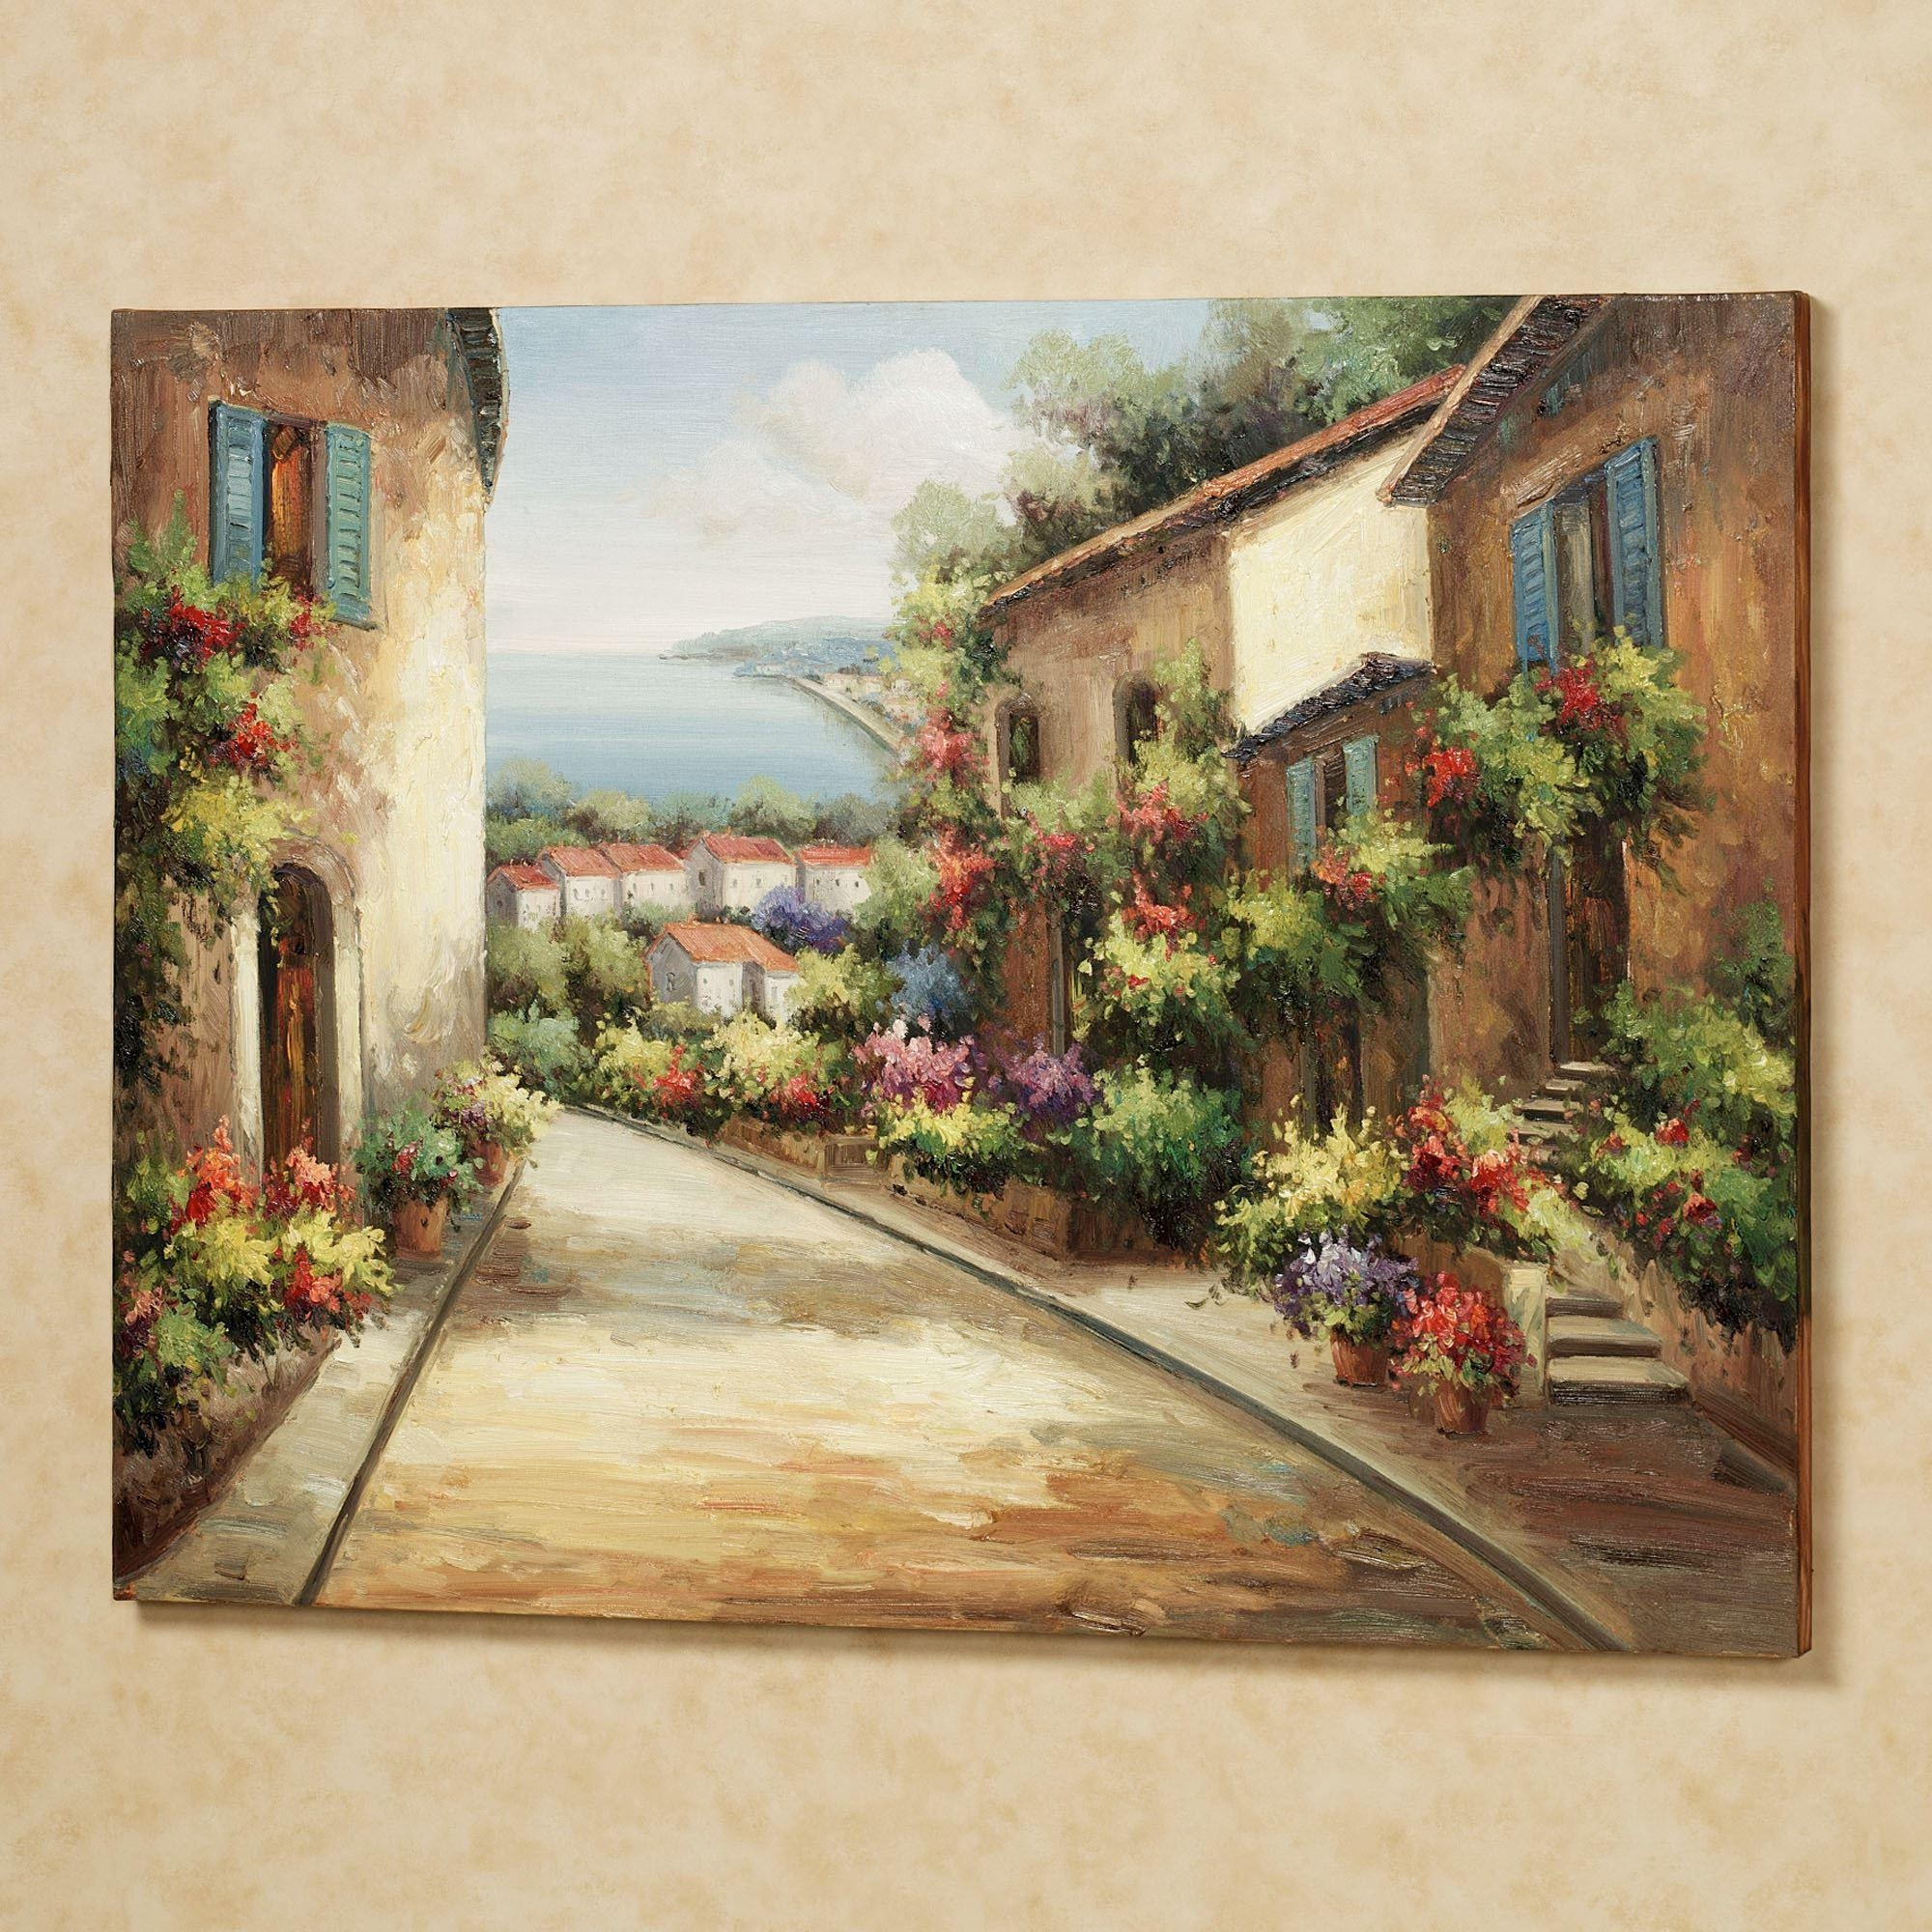 Tuscan Italian Art   Touch Of Class Intended For Tuscan Italian Canvas Wall Art (Image 10 of 20)